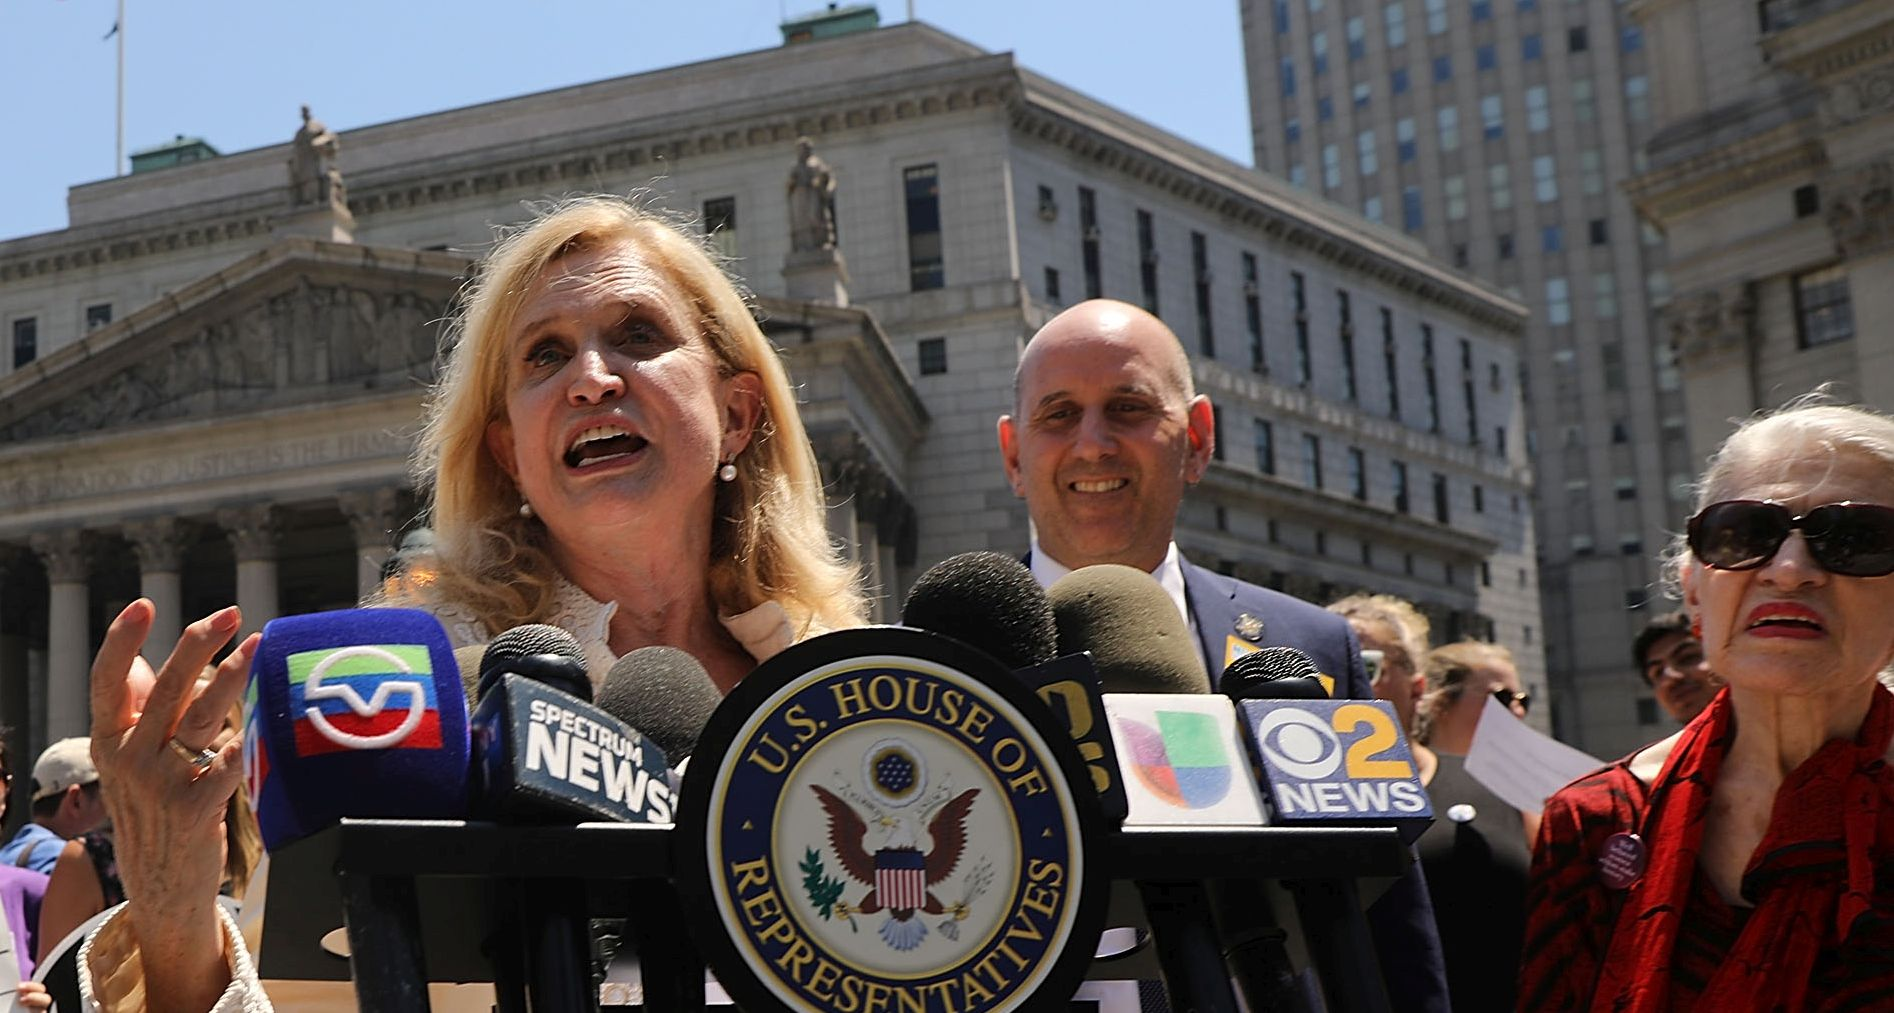 Rep. Carolyn Maloney to Take Over Oversight Committee After Cummings' Death: Reports